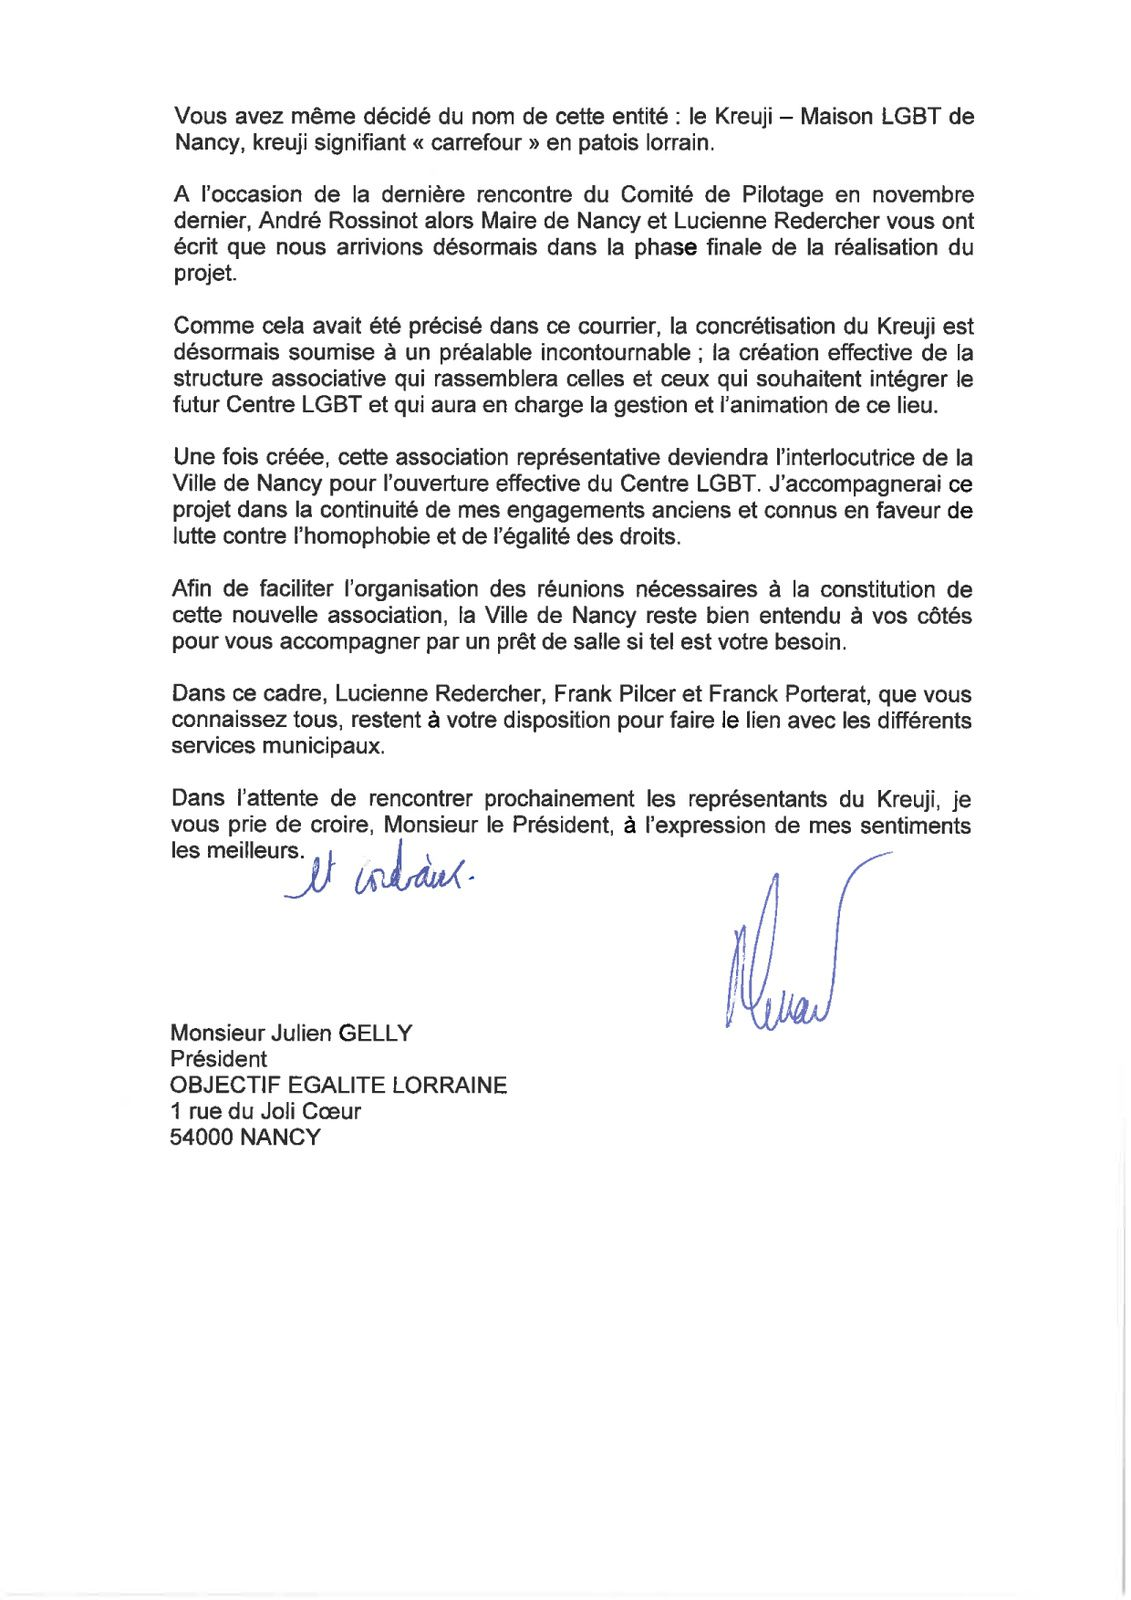 Le Kreuji - Maison LGBT de Nancy : courrier du Maire de Nancy